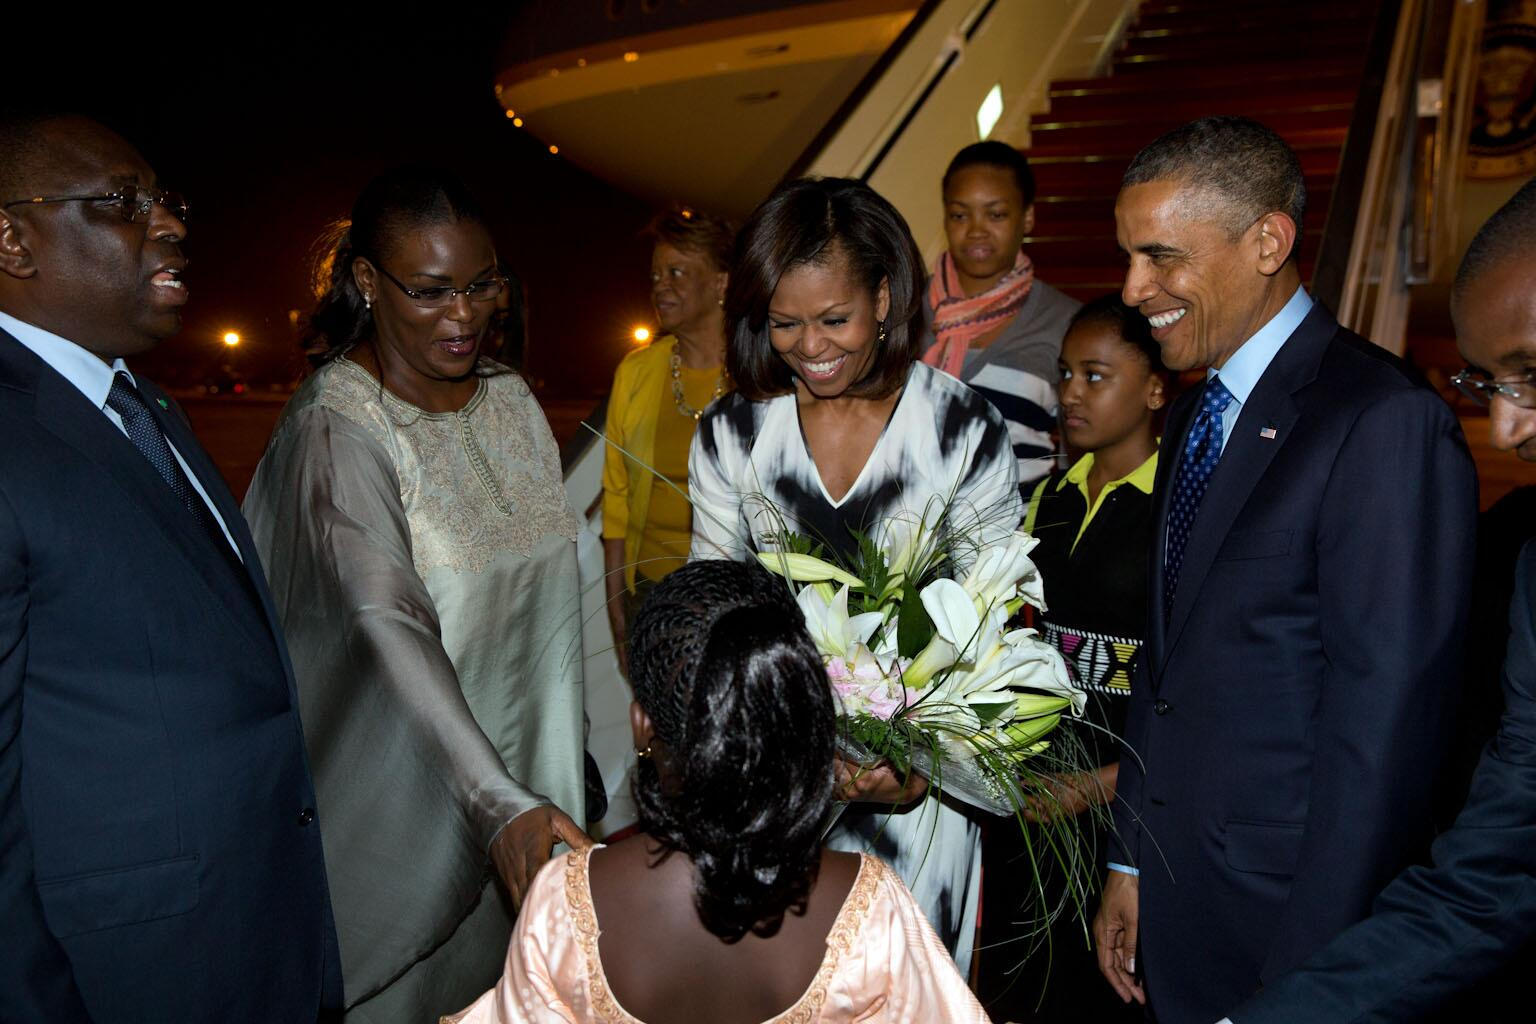 RT @petesouza: Photo of the First Family being welcomed at Senegal airport this evening http://t.co/aqlnO0udOh